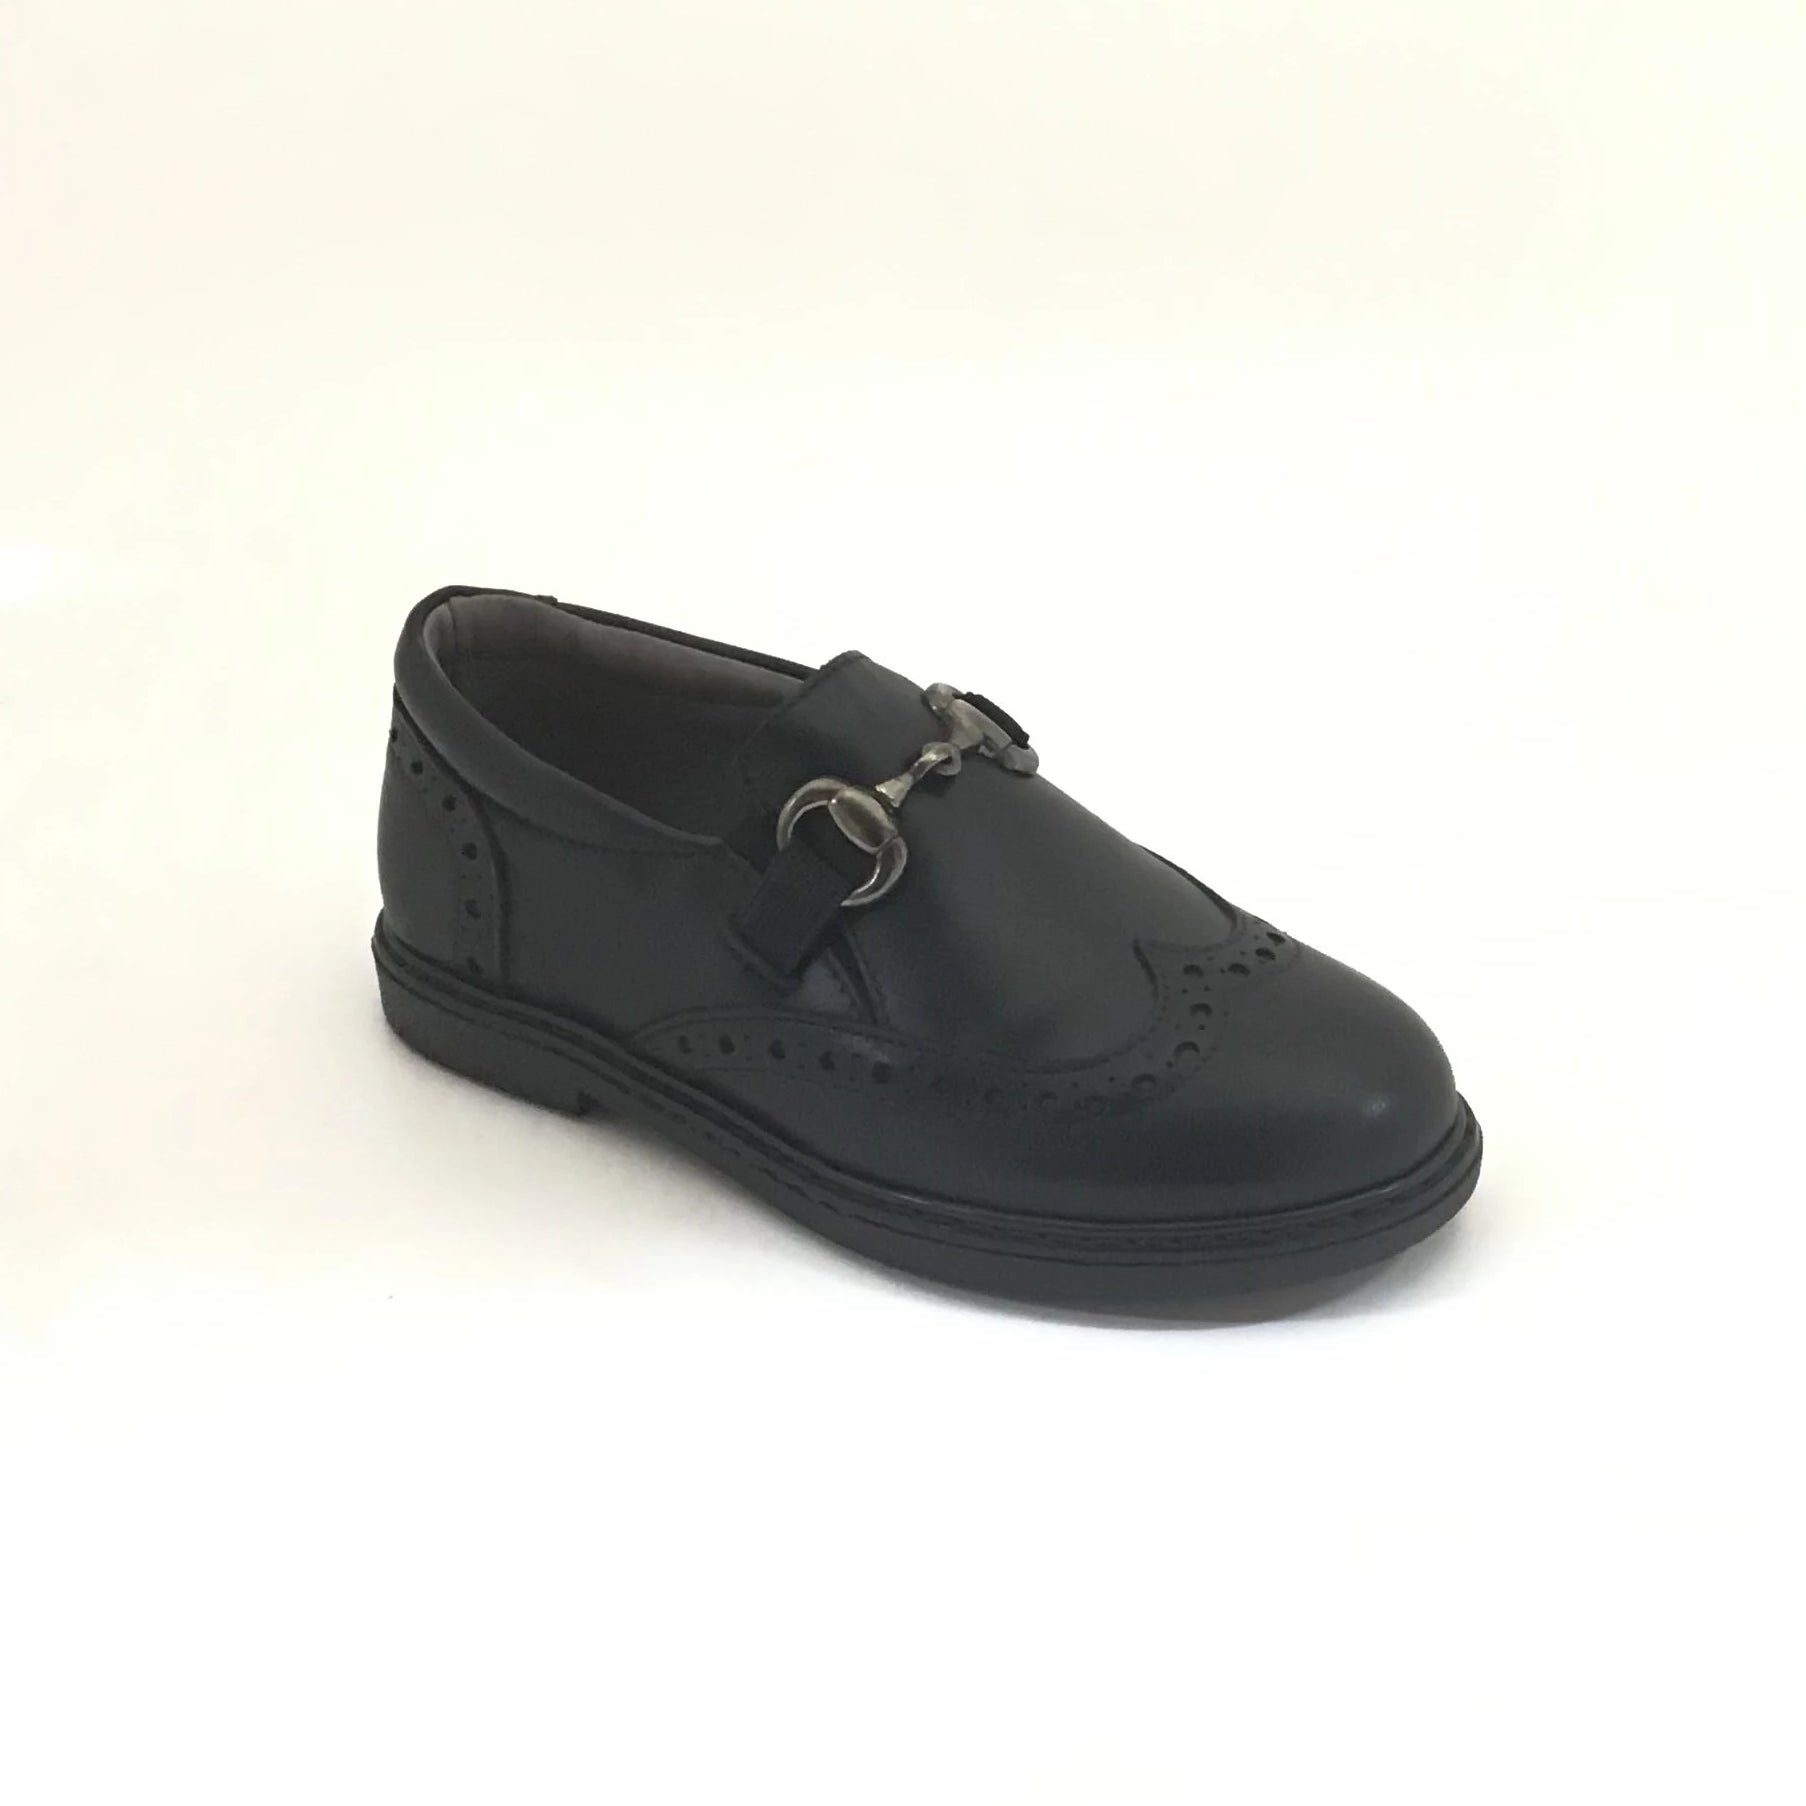 Blublonc Black Slip On With Chain